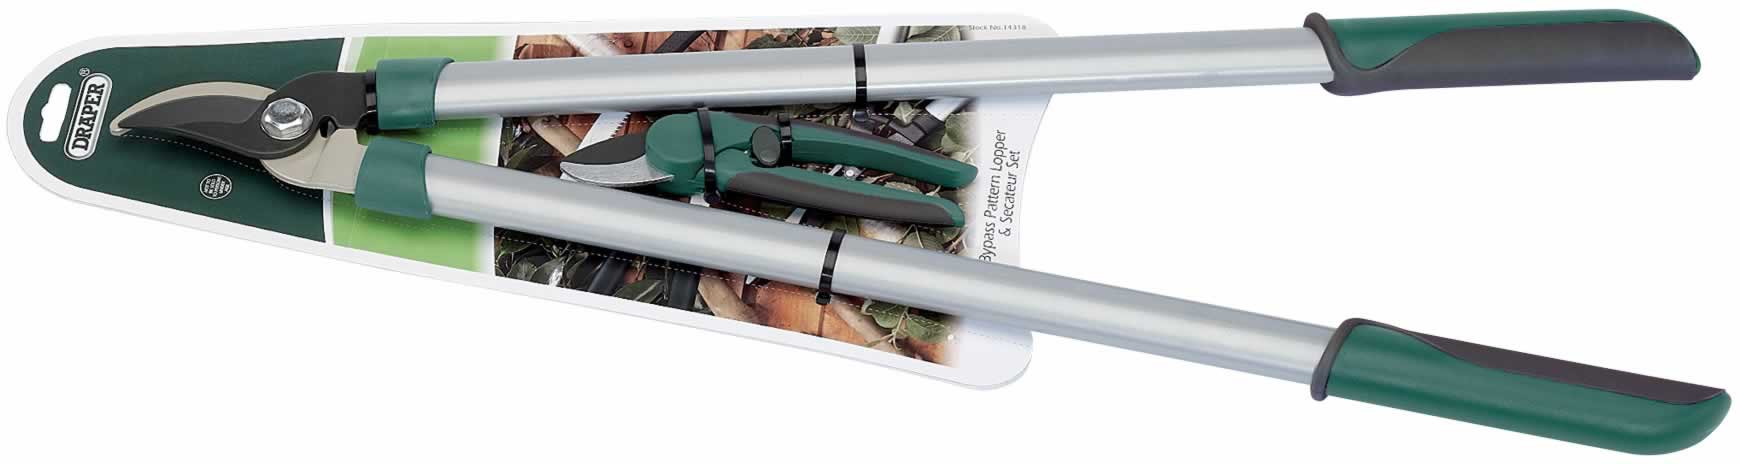 BYPASS LOPPER AND SECATEUR SET